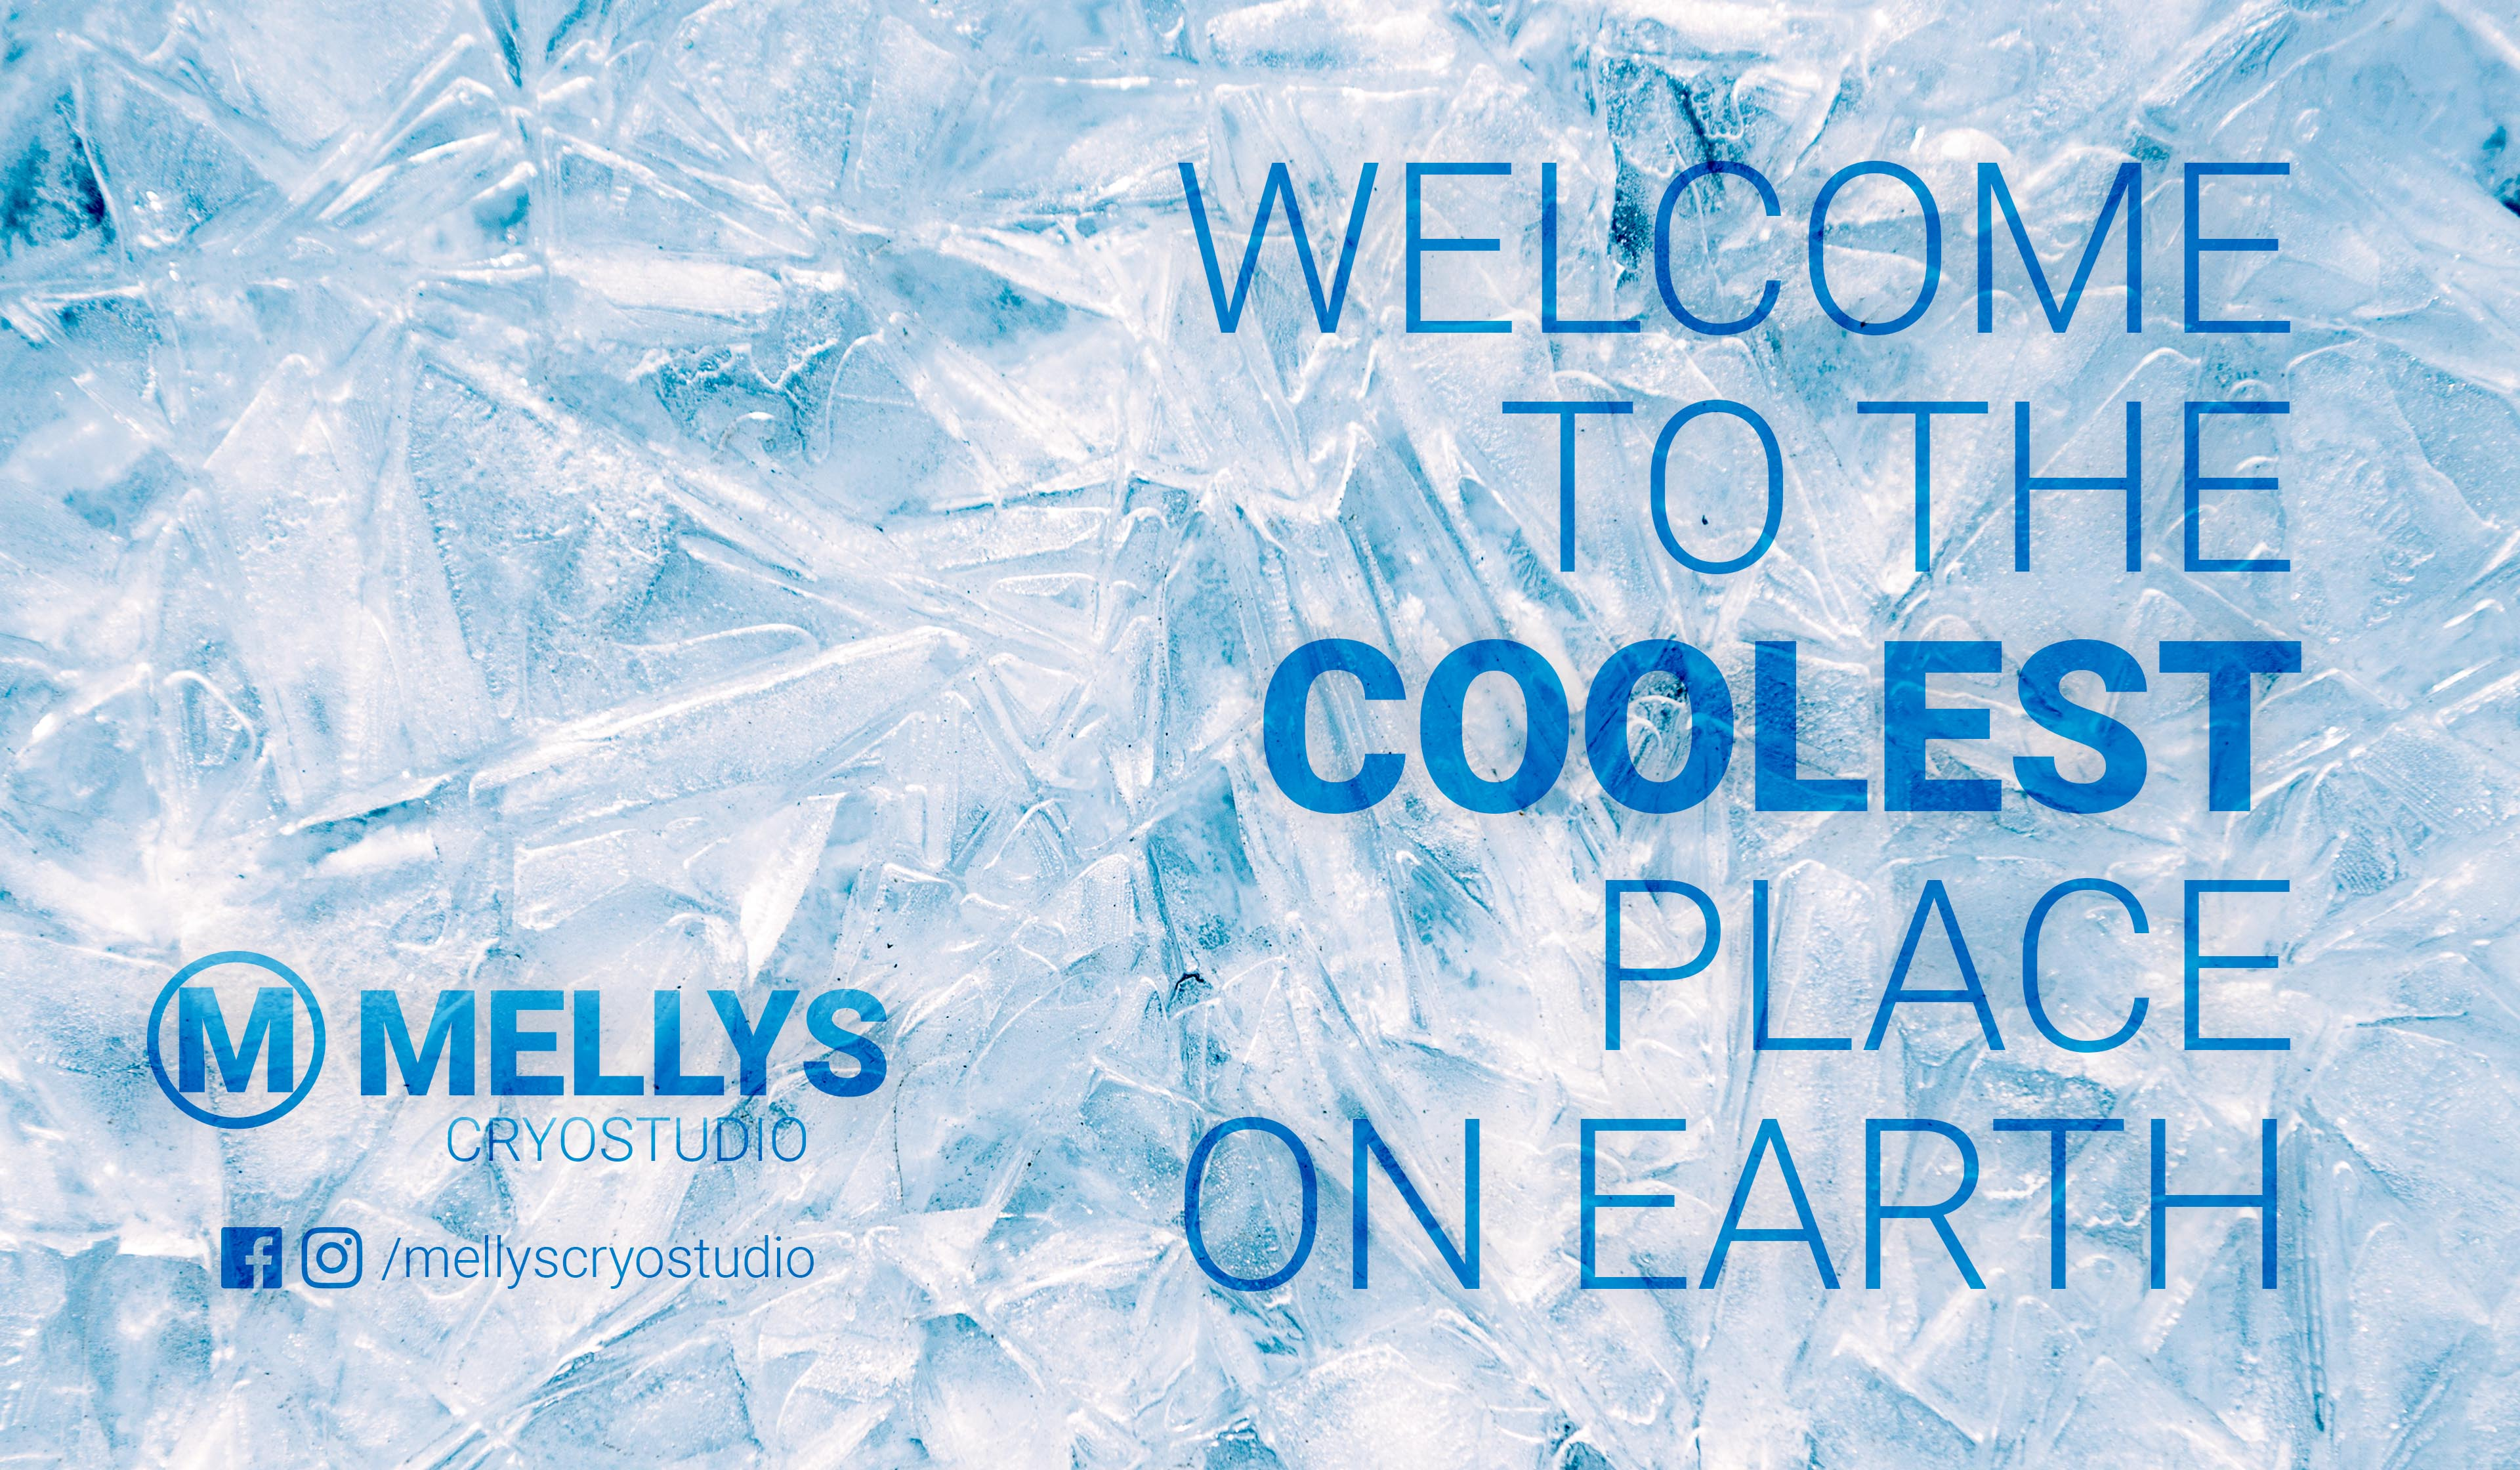 Mellys cryostudio- Banner- Welcome to the coolest place on earth - ellys zonnestudio